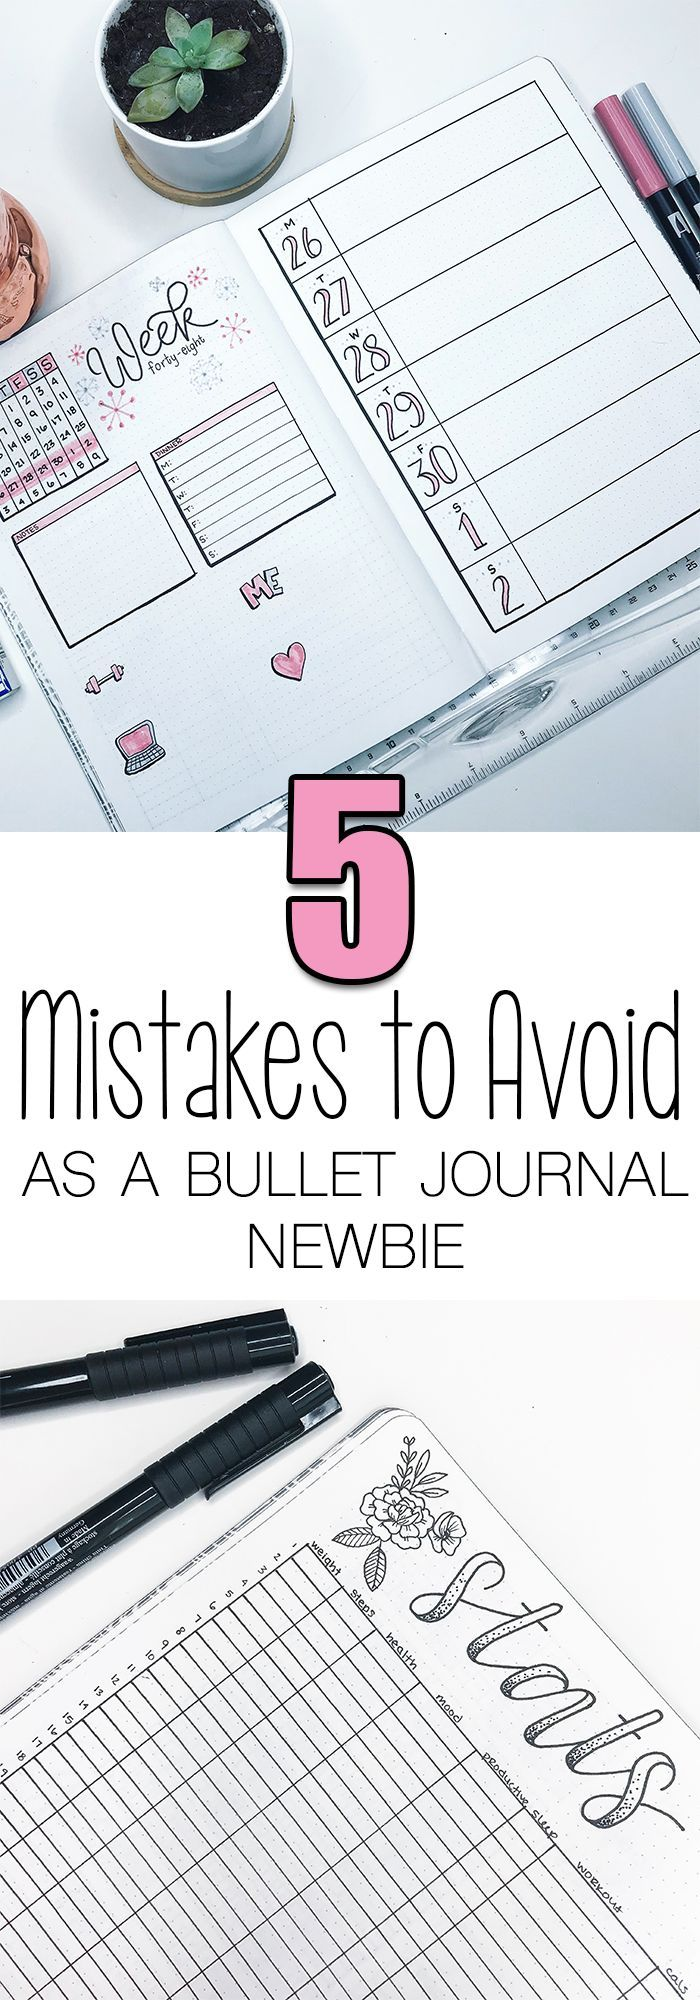 Top 5 Bullet Journal Mistakes 'Newbies' Make #debutideas